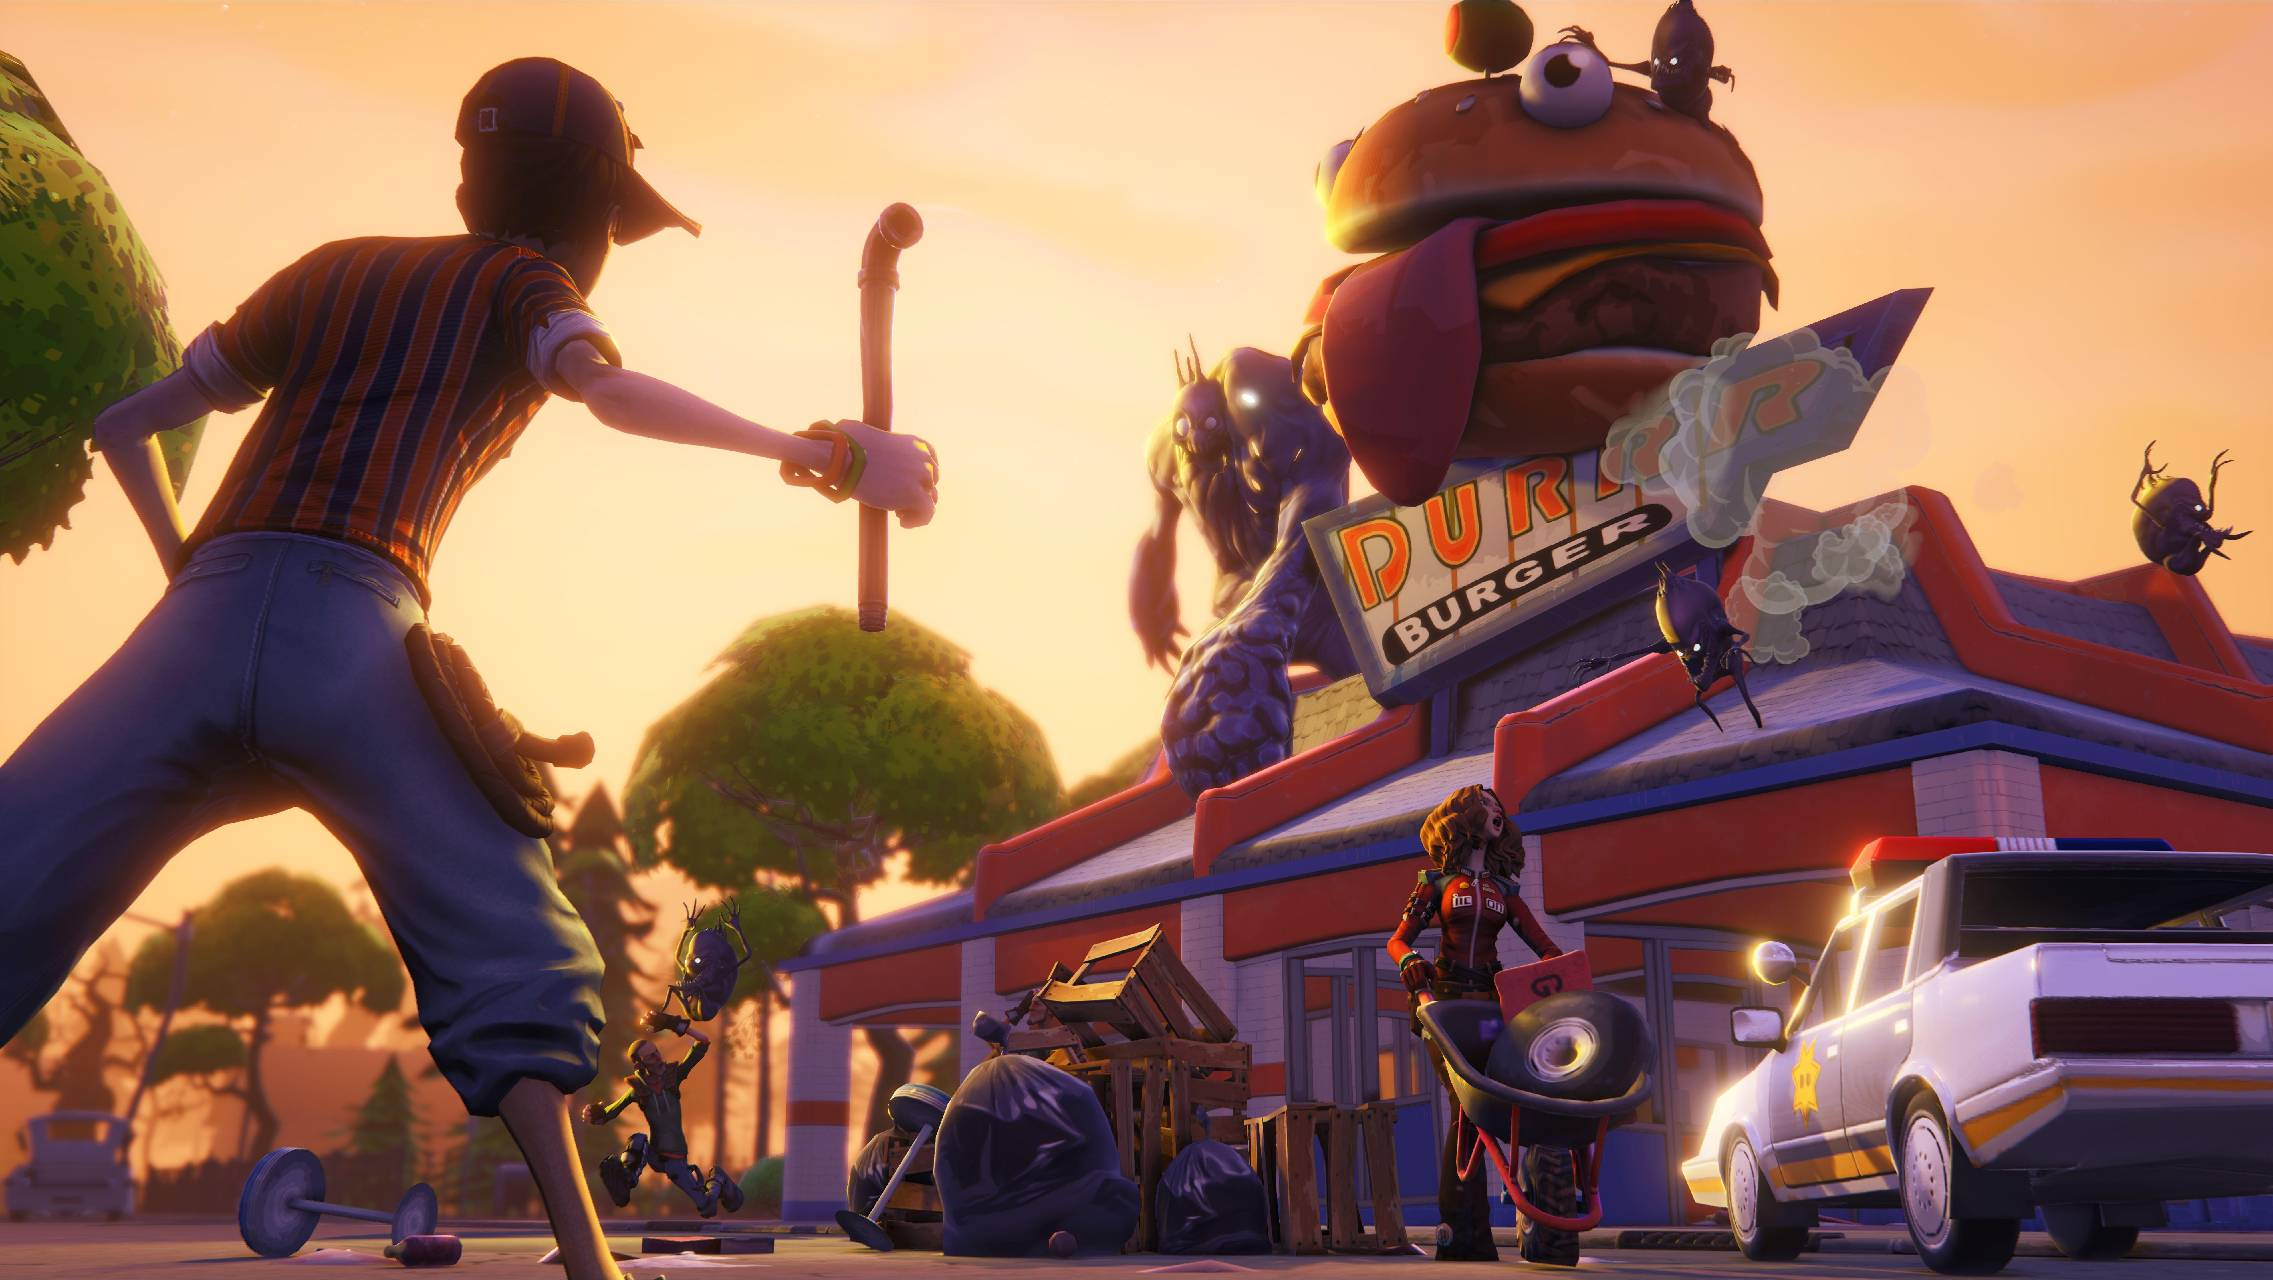 2273x1280 Fortnite durr burger Wallpaper by Flasam22 - 5e - Free on ZEDGE™